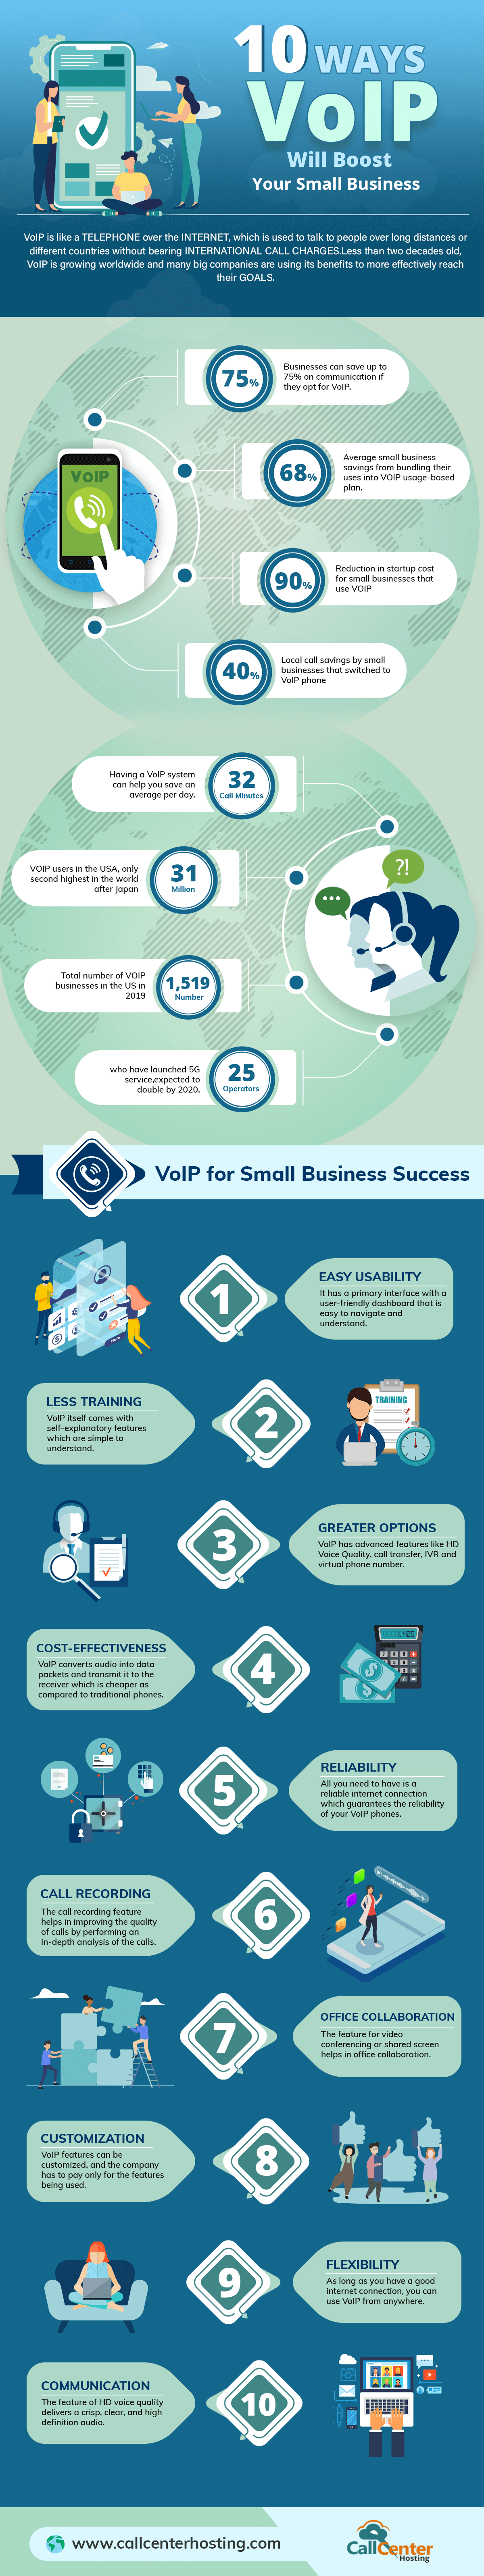 Infographic- Ten Ways VoIP Can Boost Your Small Business